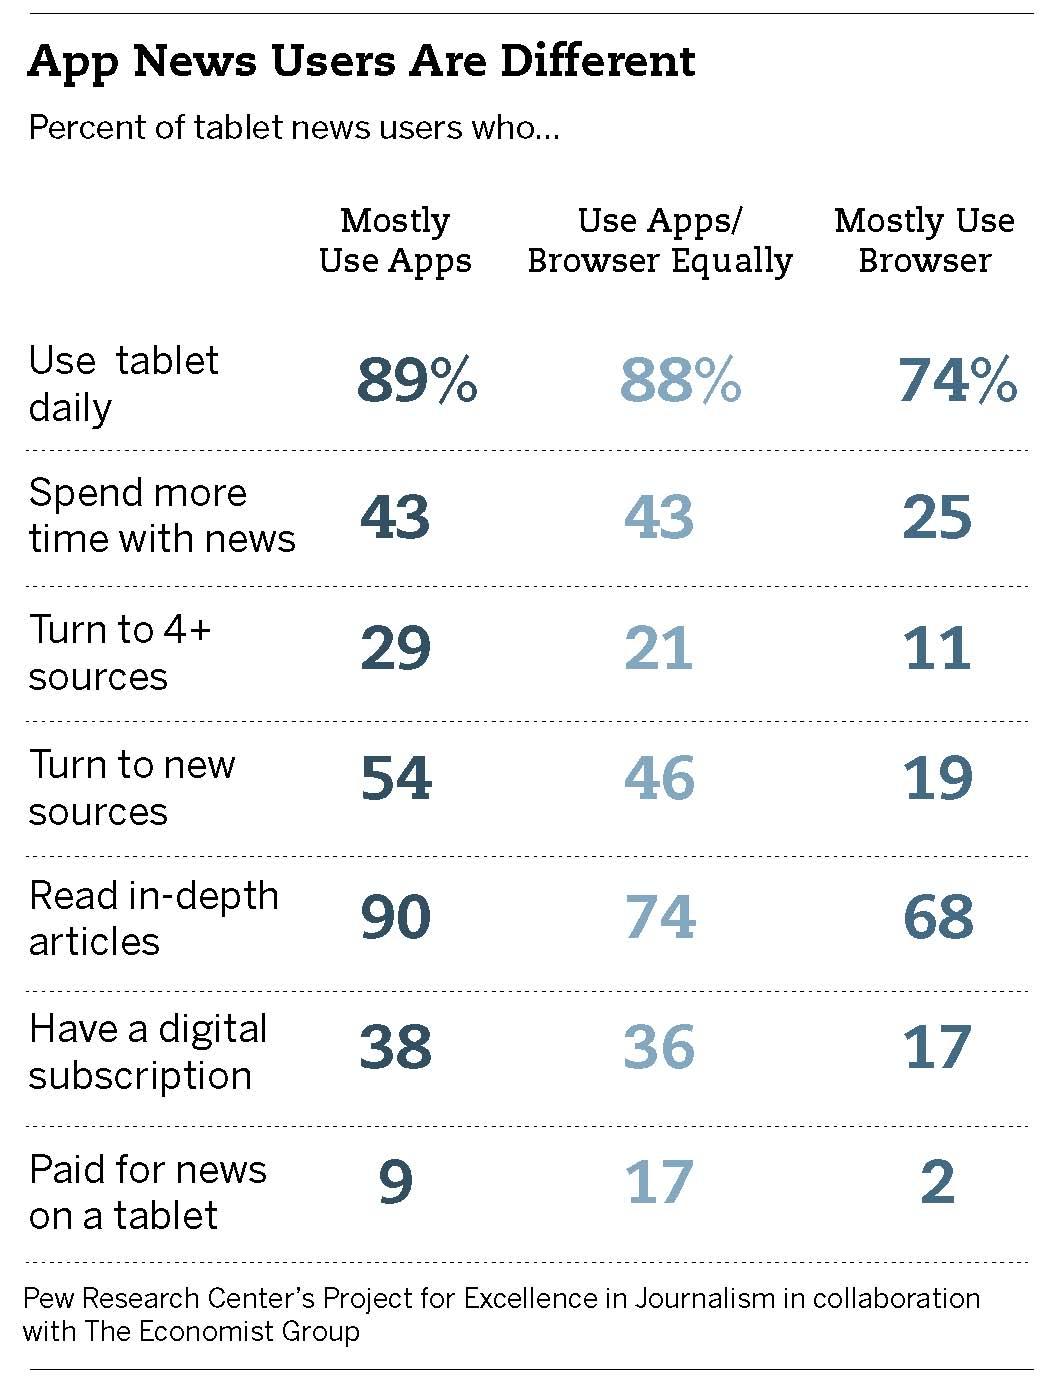 ...But app users are more rabid and deep news consumers. (Pew Report, 2012)